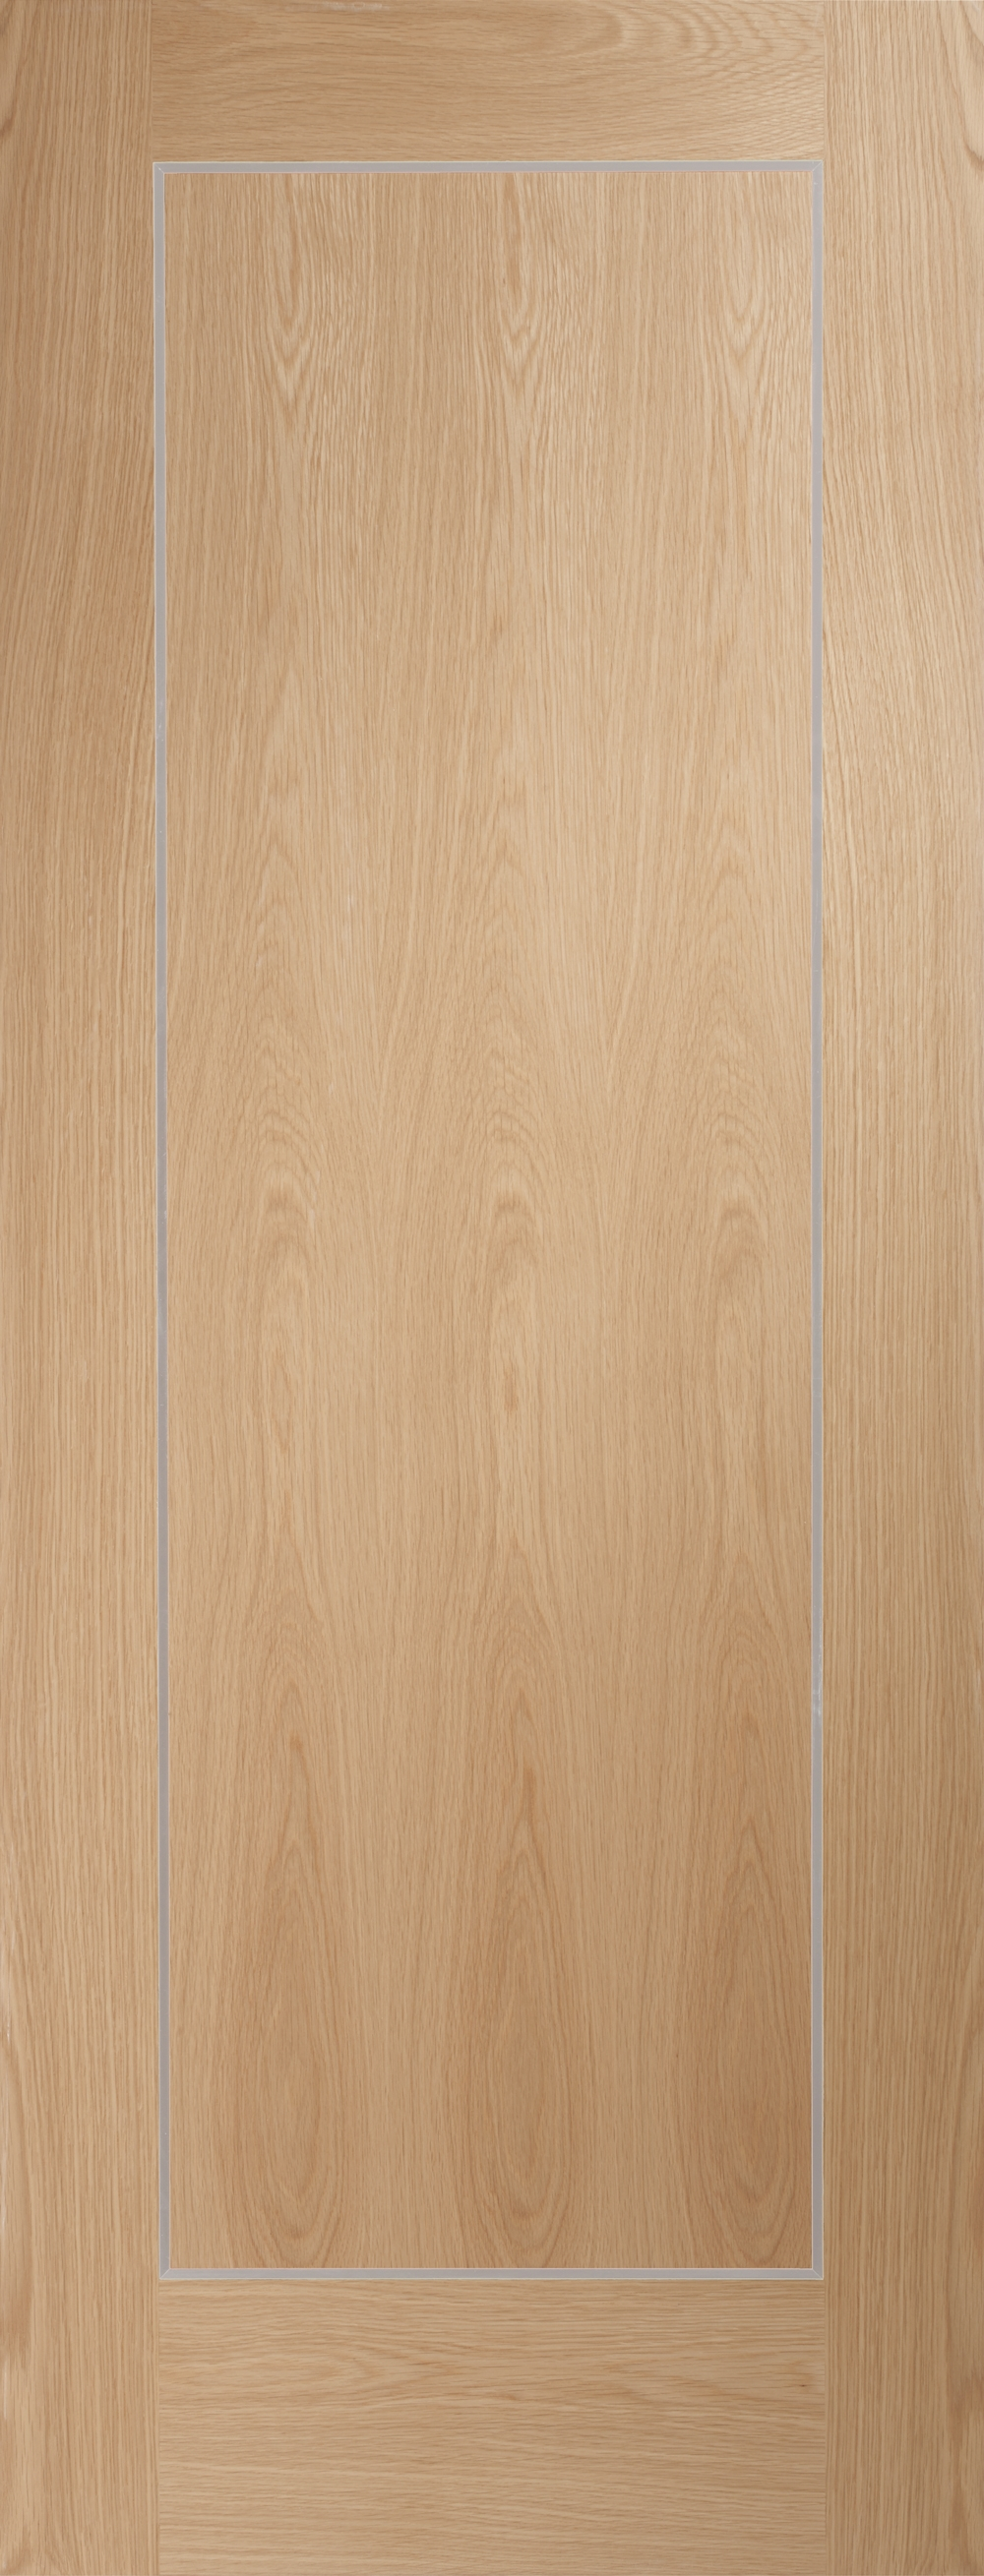 Varese Oak - PREFINISHED